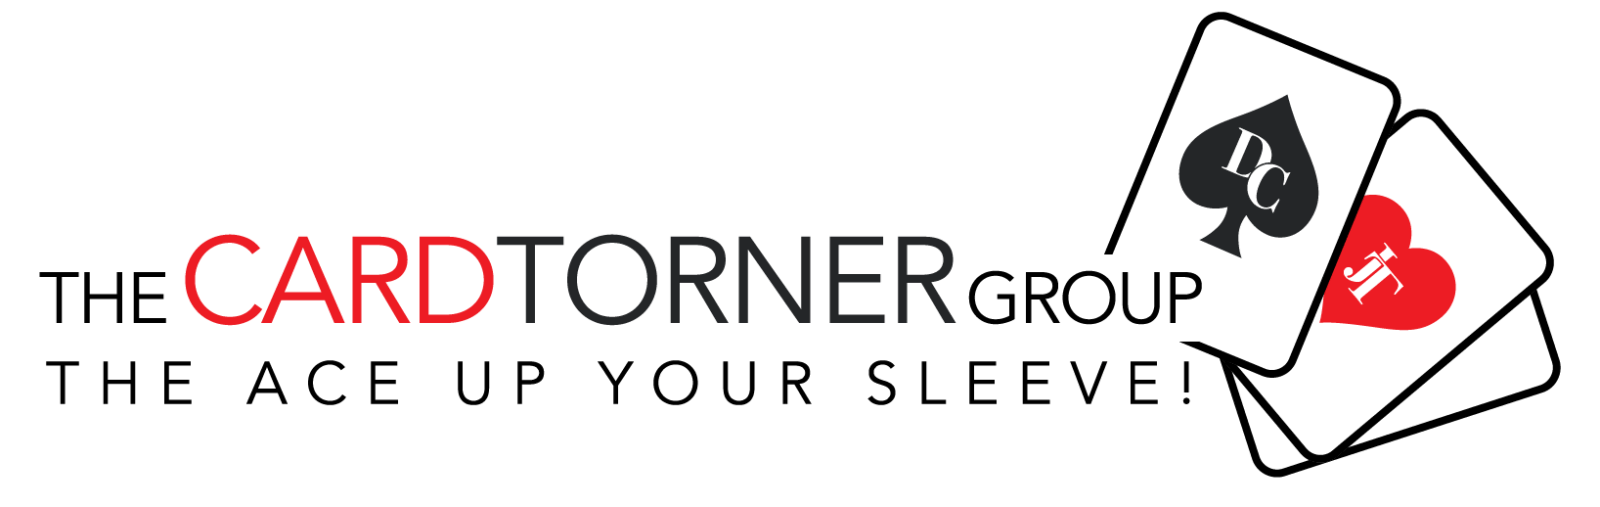 The Card Torner Group